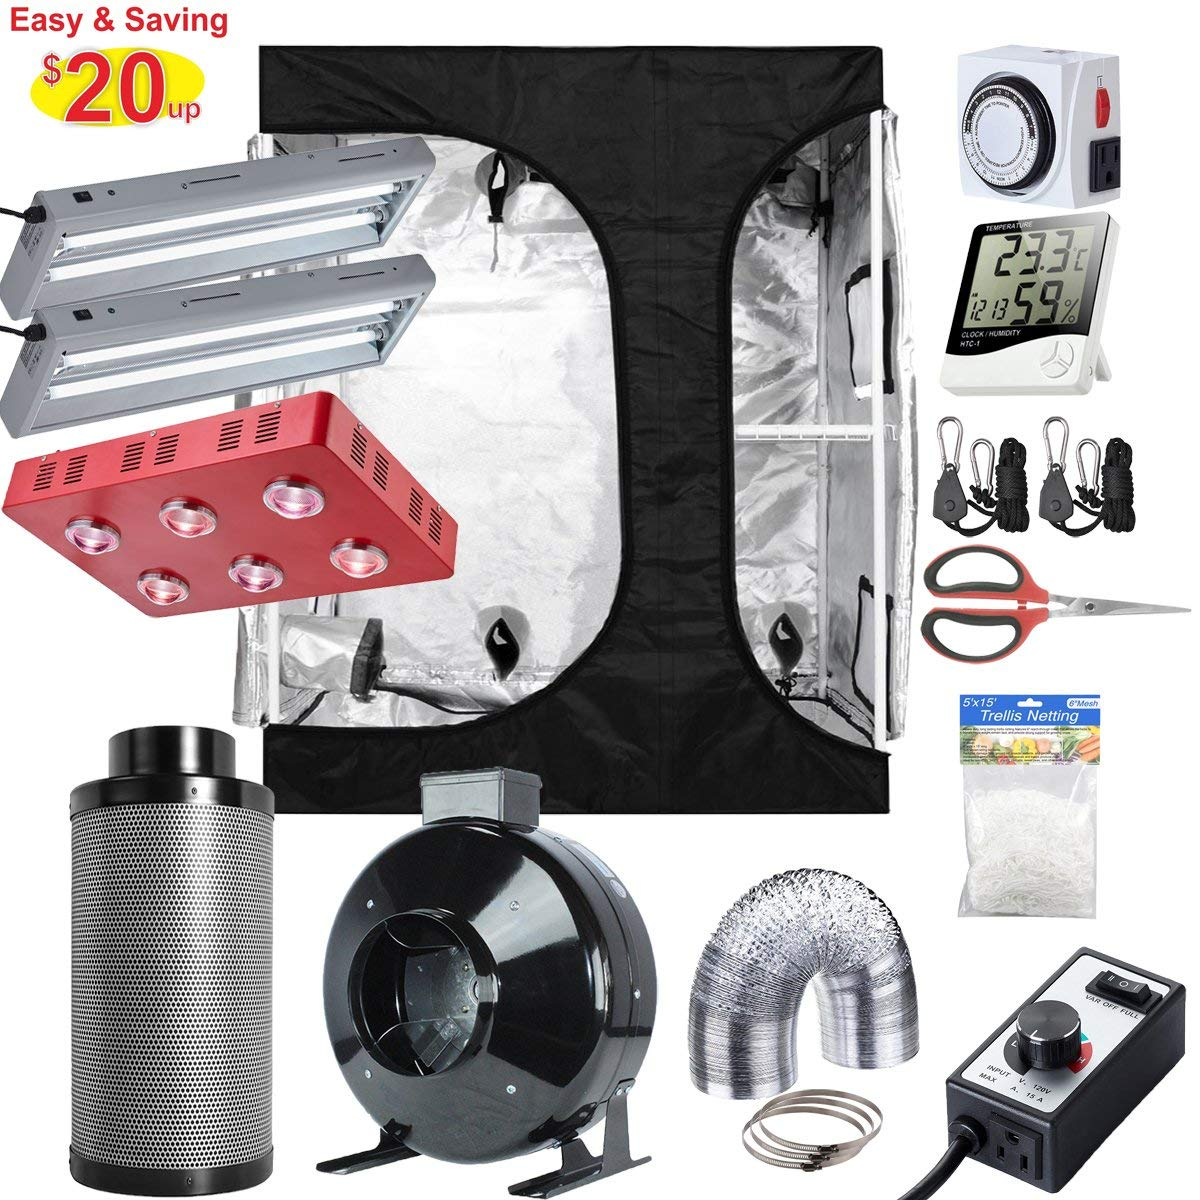 """Hydro Plus 60""""x48""""x80"""" 2-in-1 Grow Tent Complete Kit + LED 1200W Grow Light Kit + 2X 2FT 24W 2-Lamp T5 Light + 6"""" Filter Ventilation Kit + Hydroponics Indoor Growing Accessories (LED 1200W Kit)"""